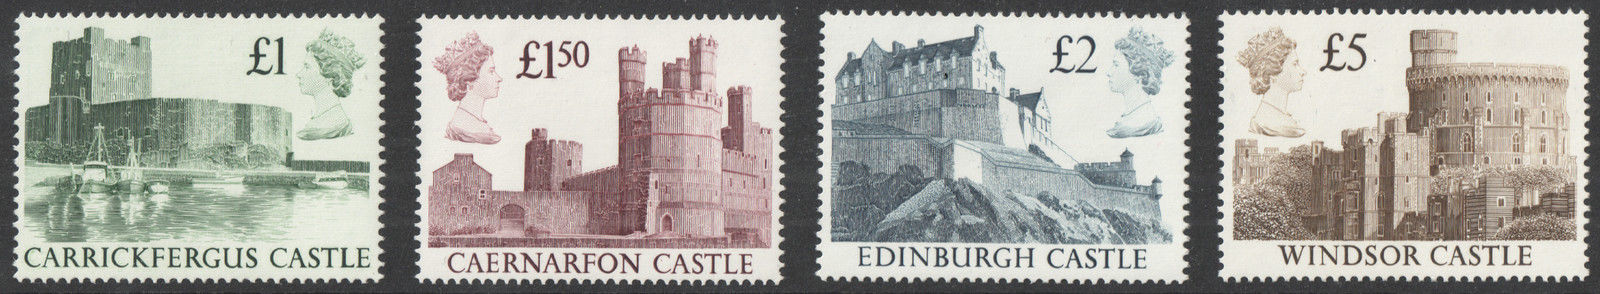 SG1410 / 13 Harrison High Value Castle Definitives Unmounted Mint Set of 4